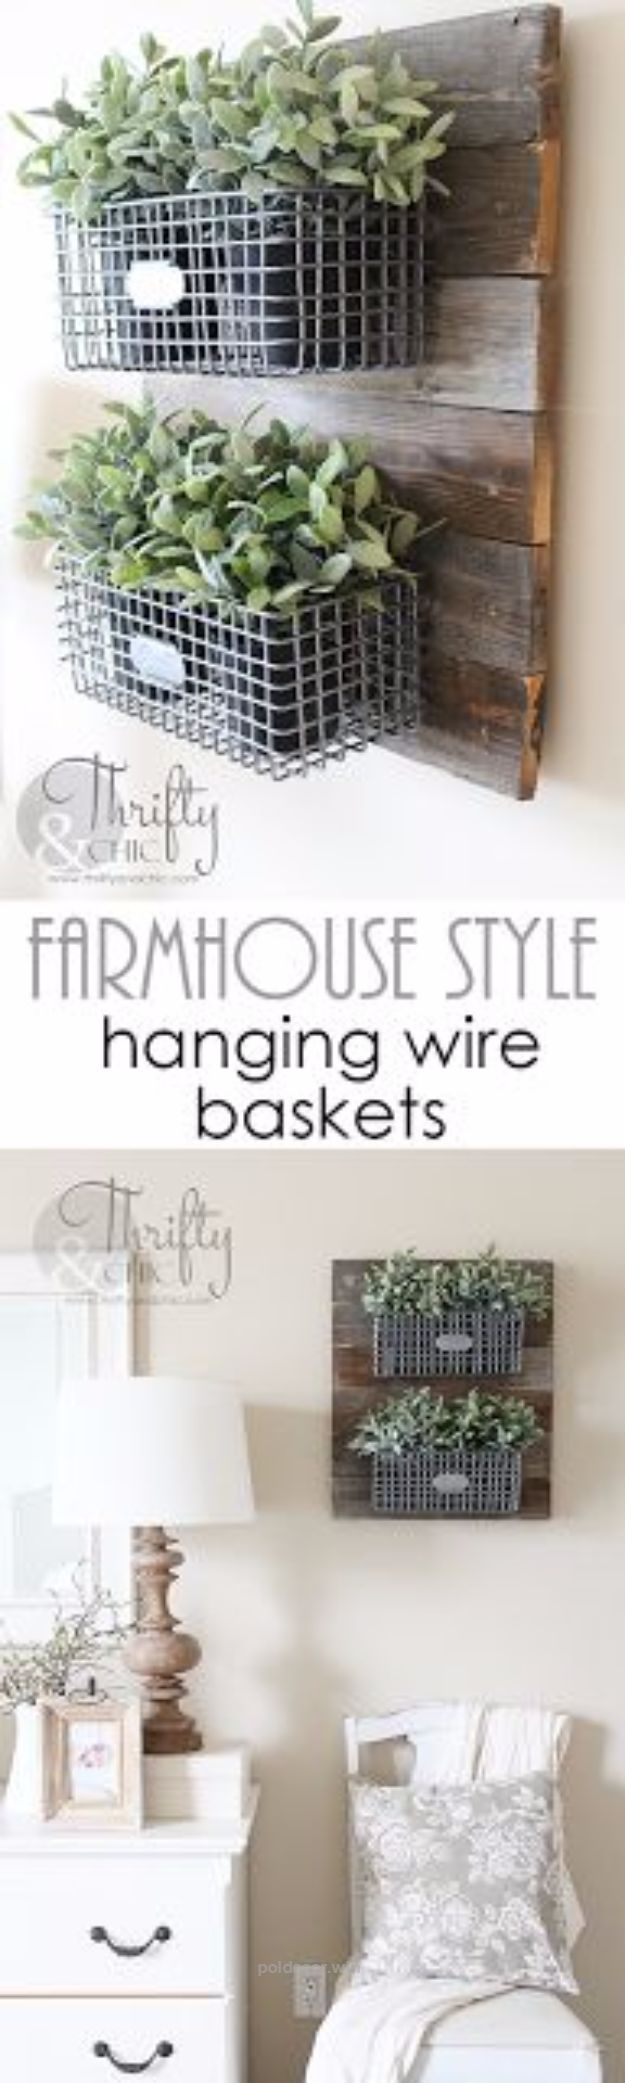 Outstanding Best Country Decor Ideas – Farmhouse Style Hanging Wire Baskets – Rustic Farmhouse Decor Tutorials and Easy Vintage Shabby Chic Home Decor for Kitchen, Living Room and Bathroom – Creativ .. #farmhousedecorcountry